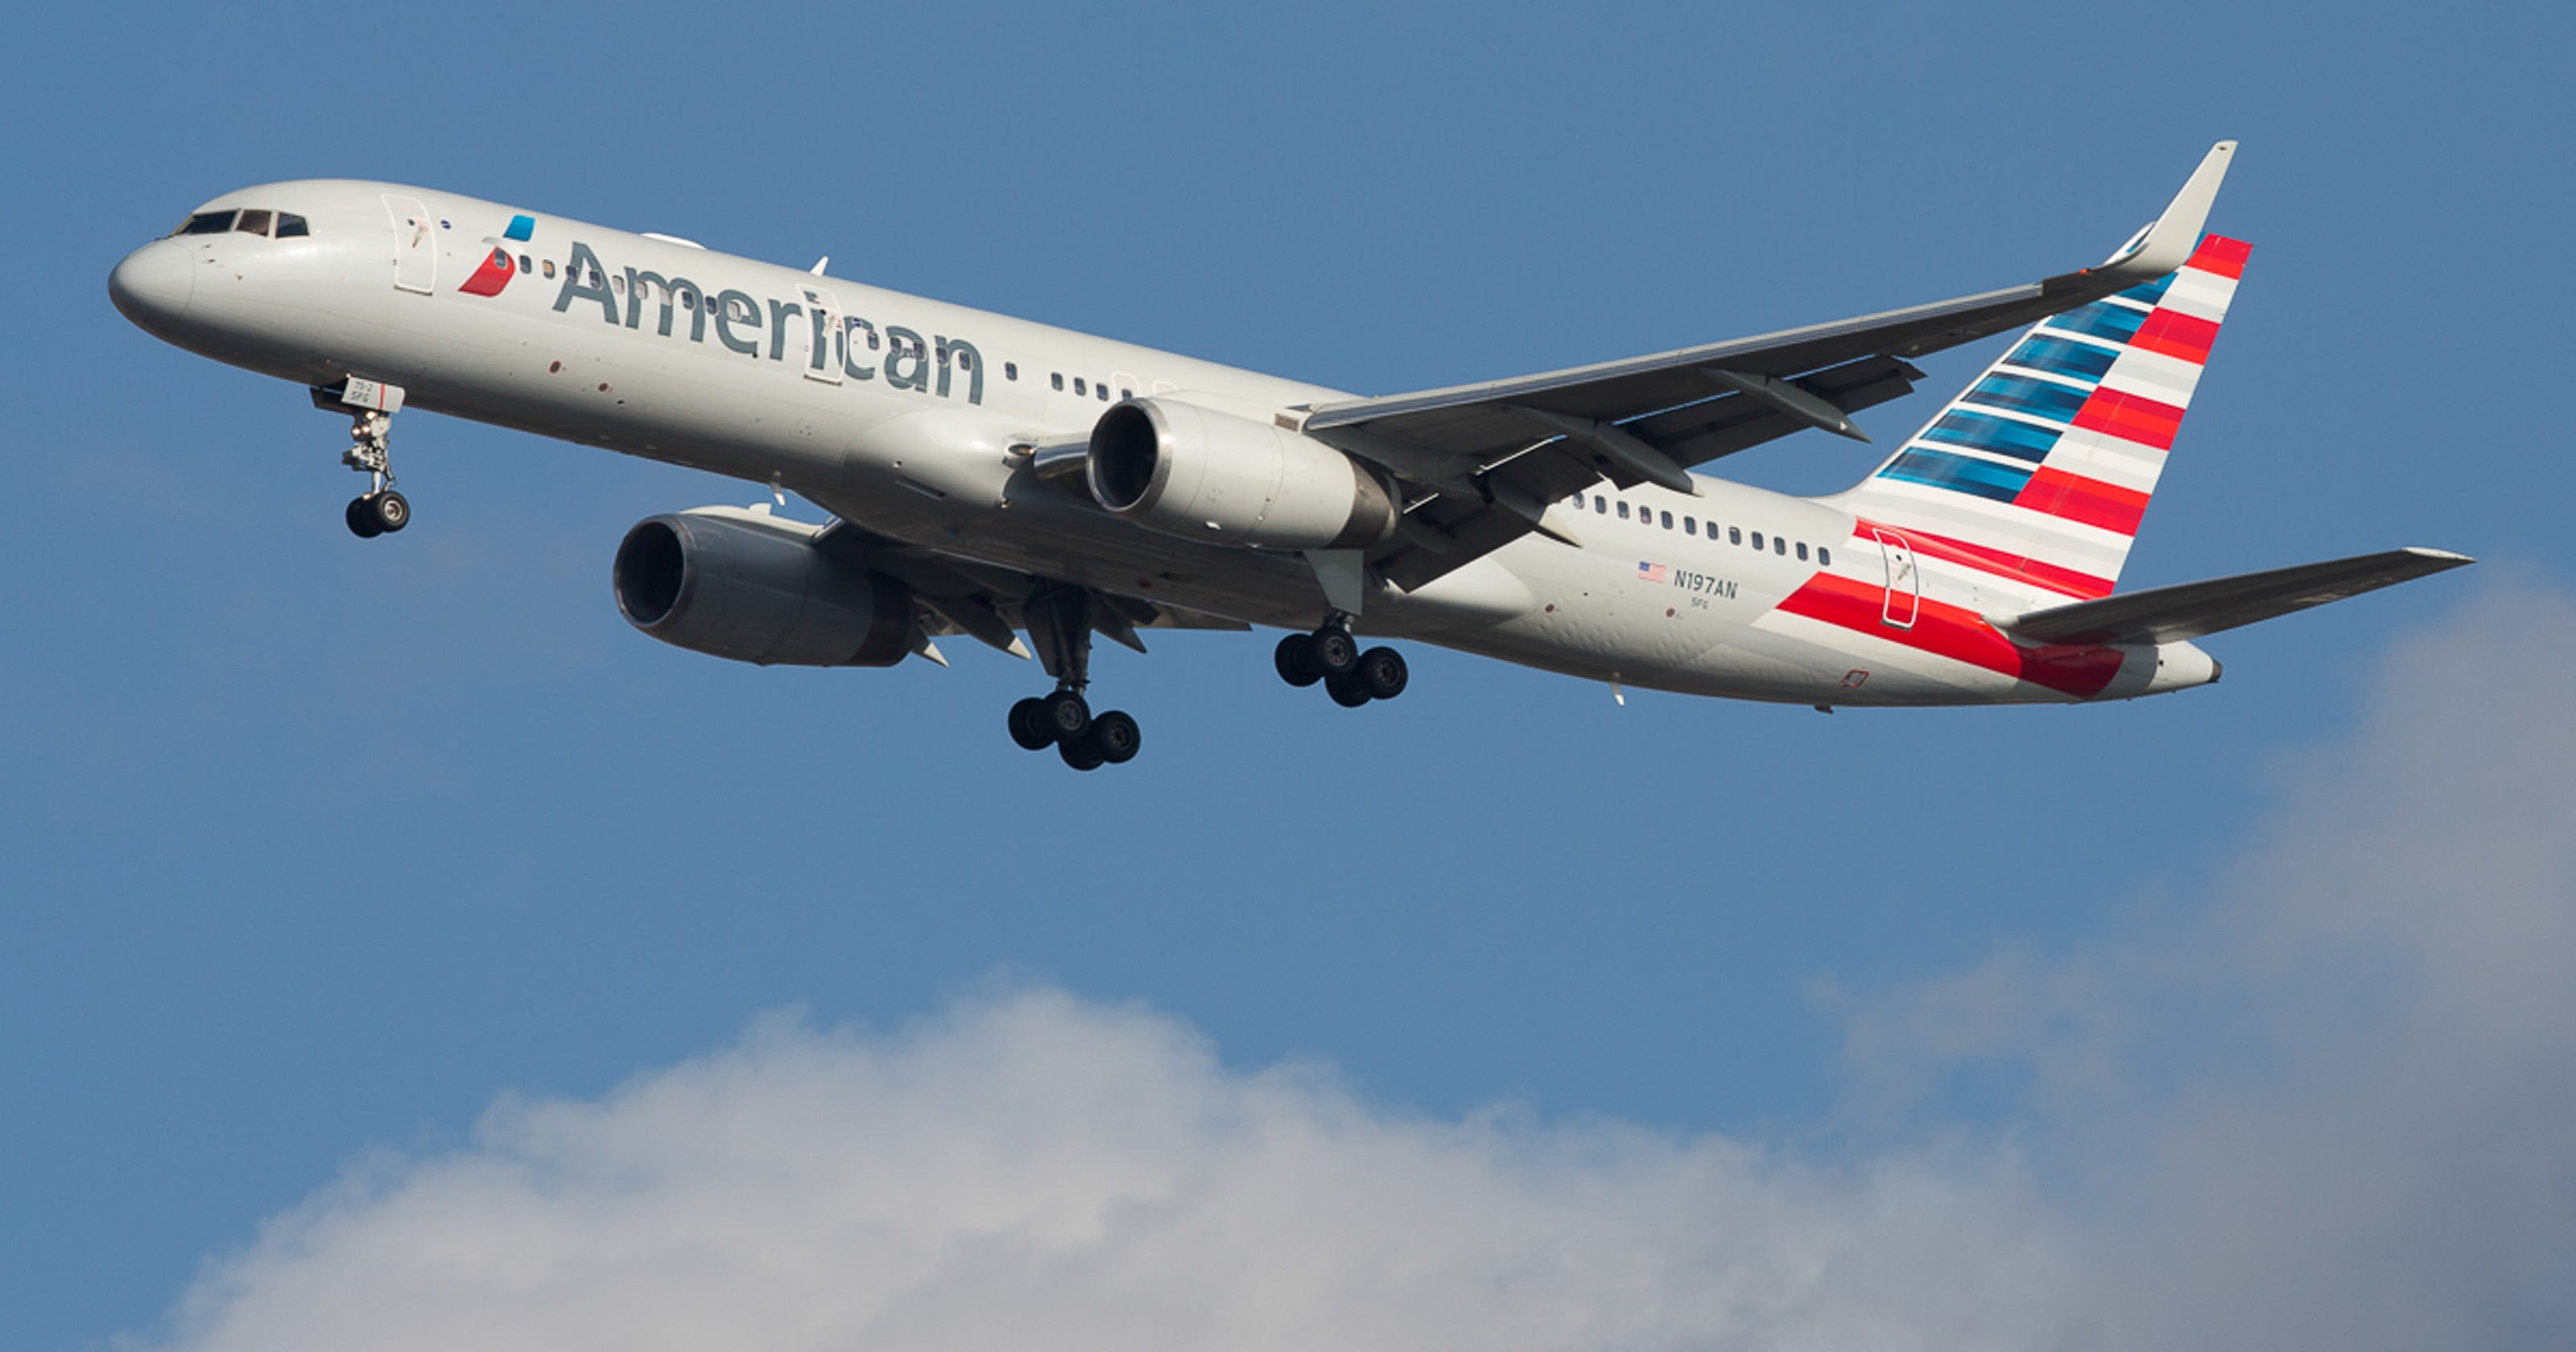 American Airlines adds Iceland flights as compeion surges on lirr route map, conrail route map, world airline route map, path route map, hudson route map, staten island ferry route map, iran air route map,